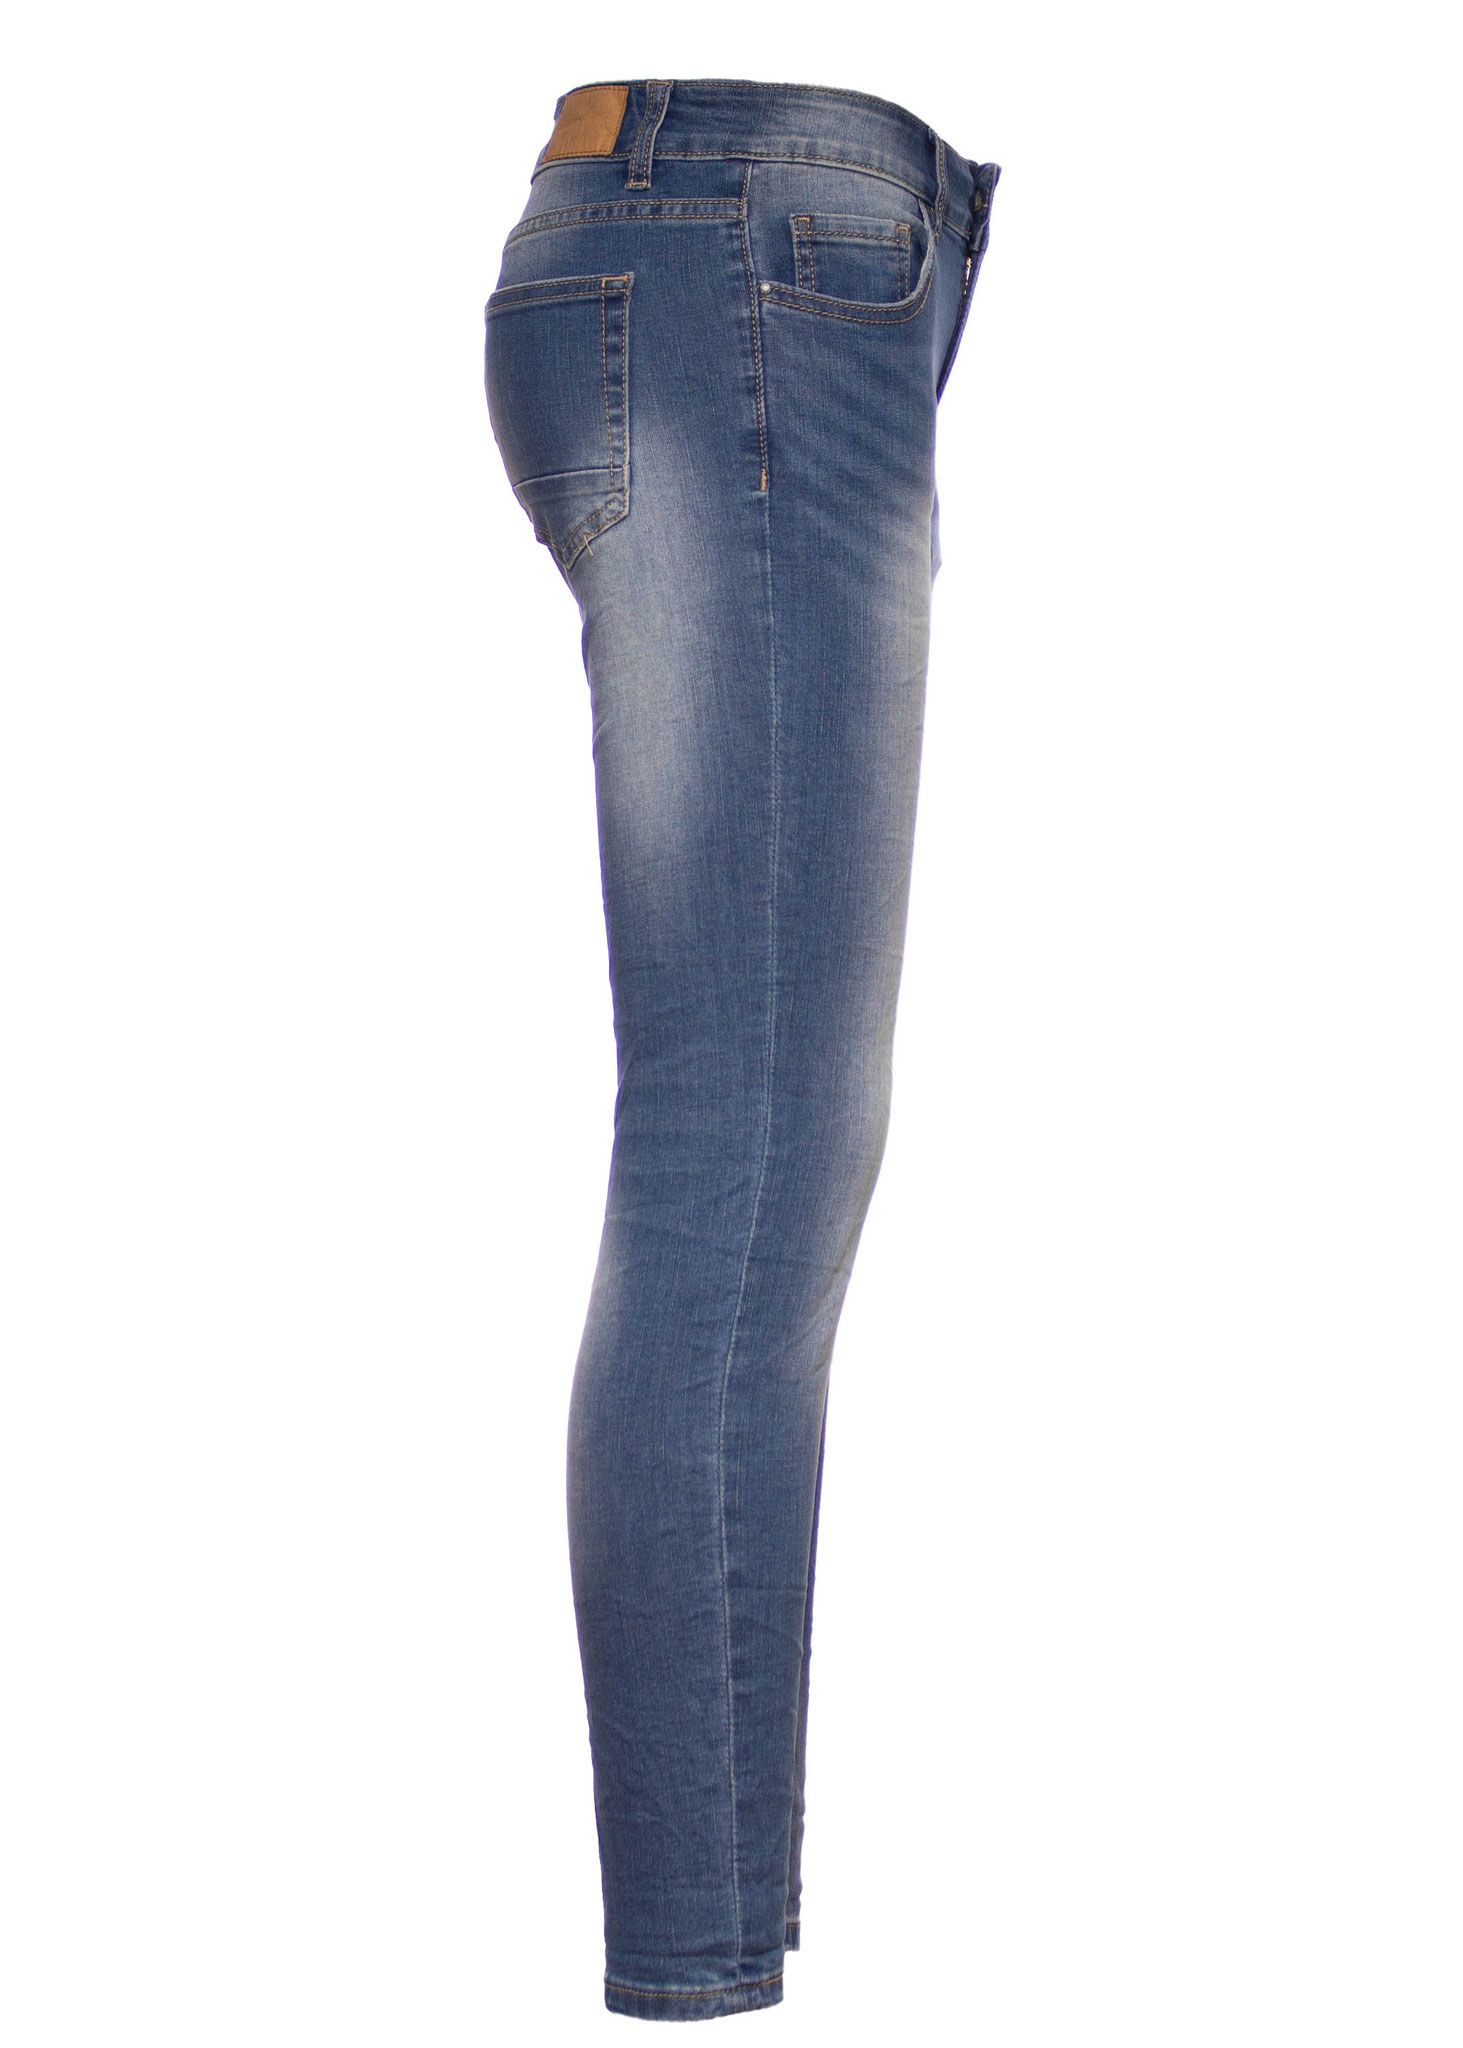 Jeans 49,99€